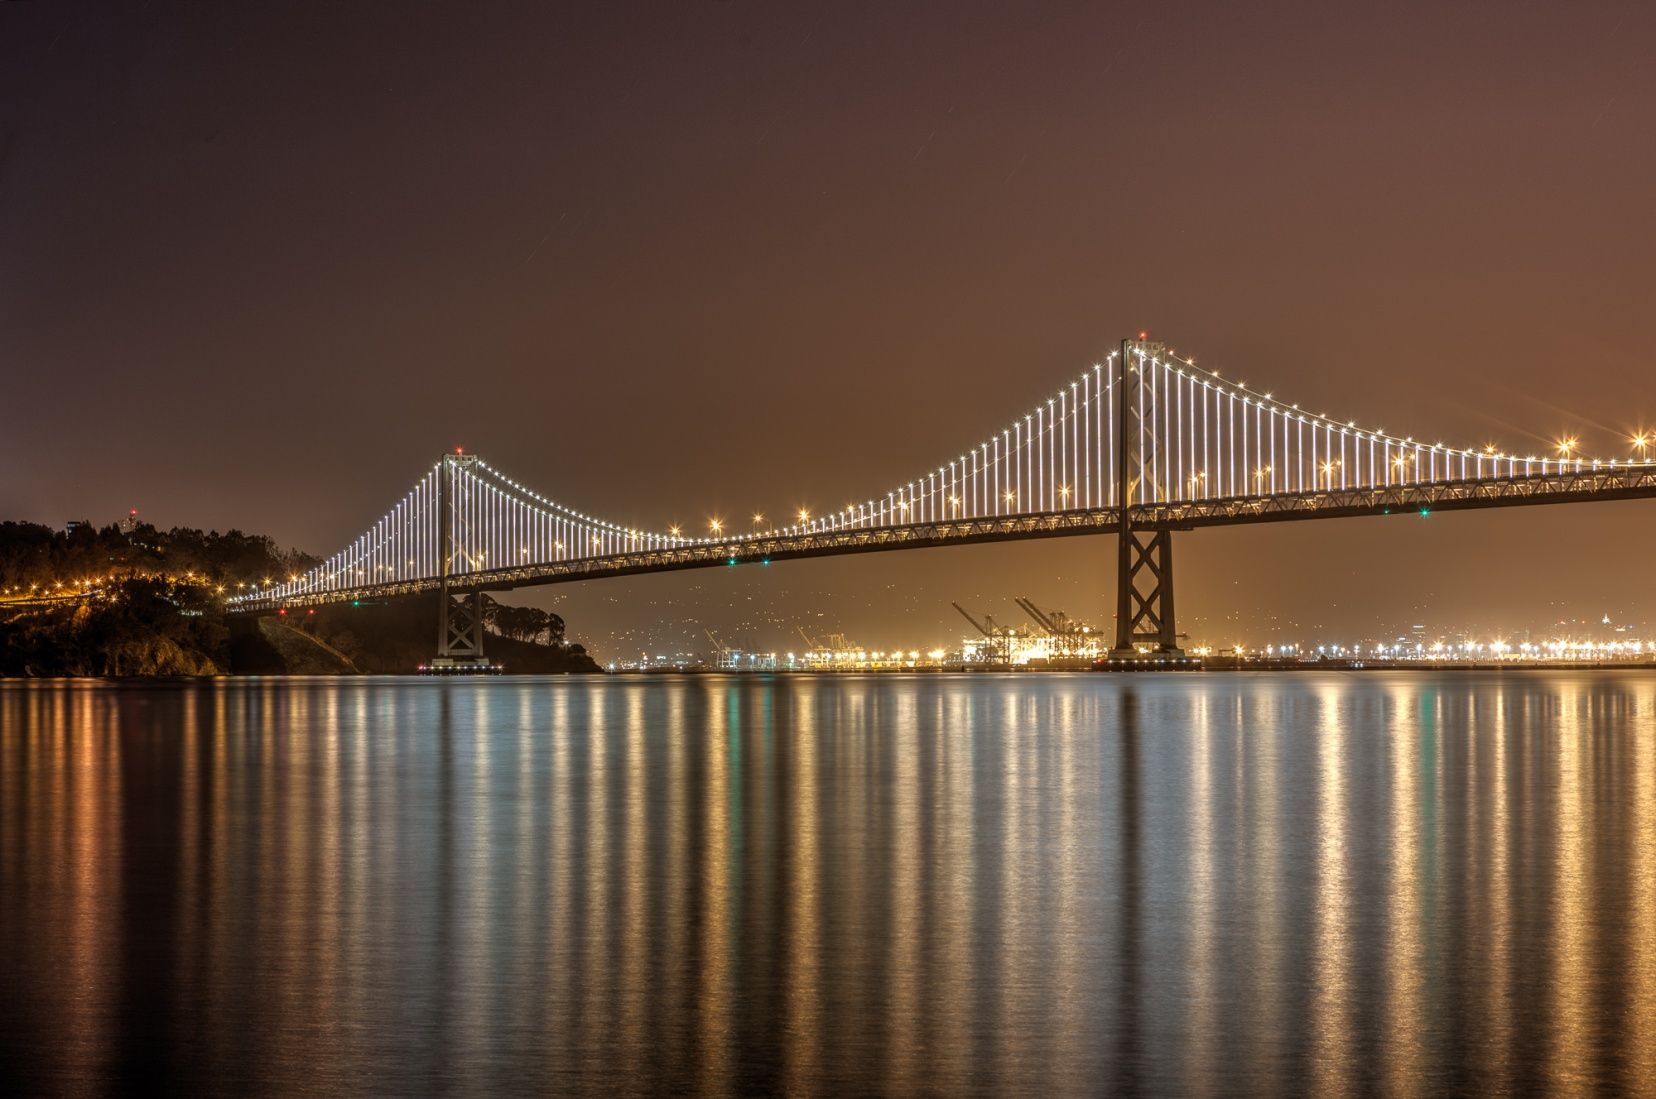 The Bay Lights Installation on the San Francisco Bay Bridge is back